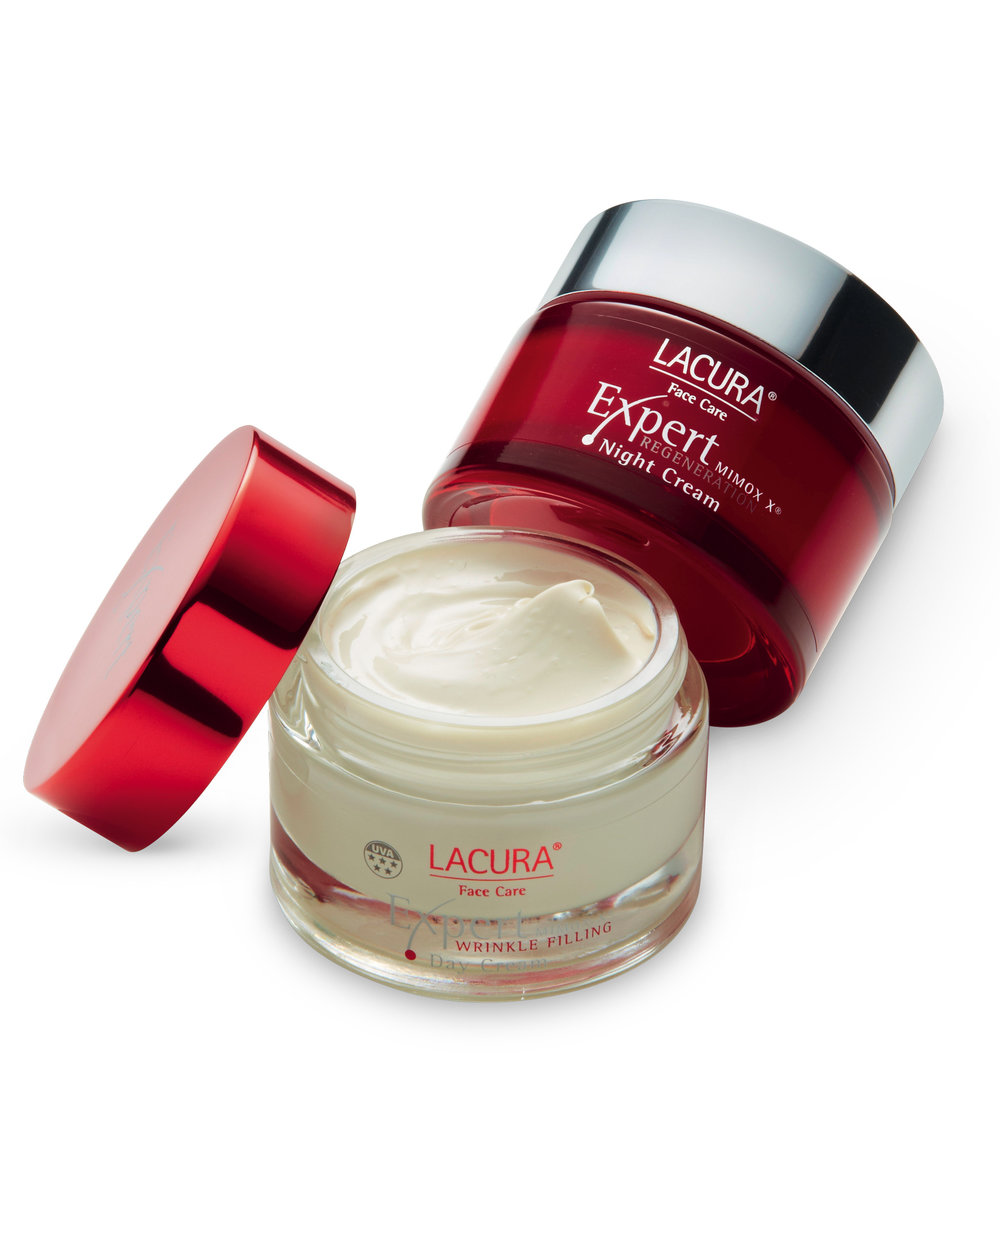 Lacura Expert Night Cream is $9.95